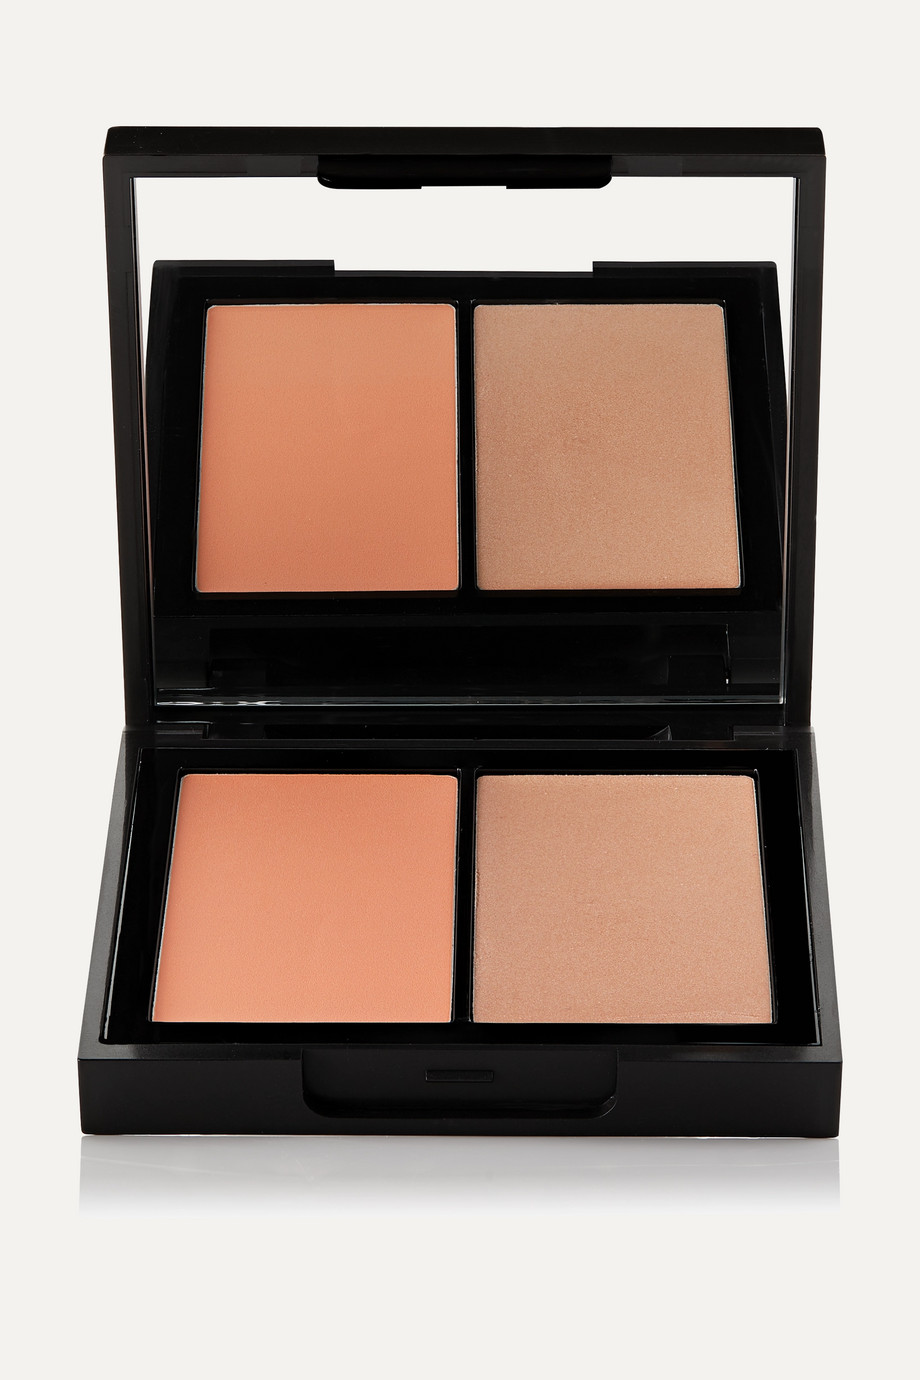 Kosas Color & Light Crème Blush - Velvet Melon